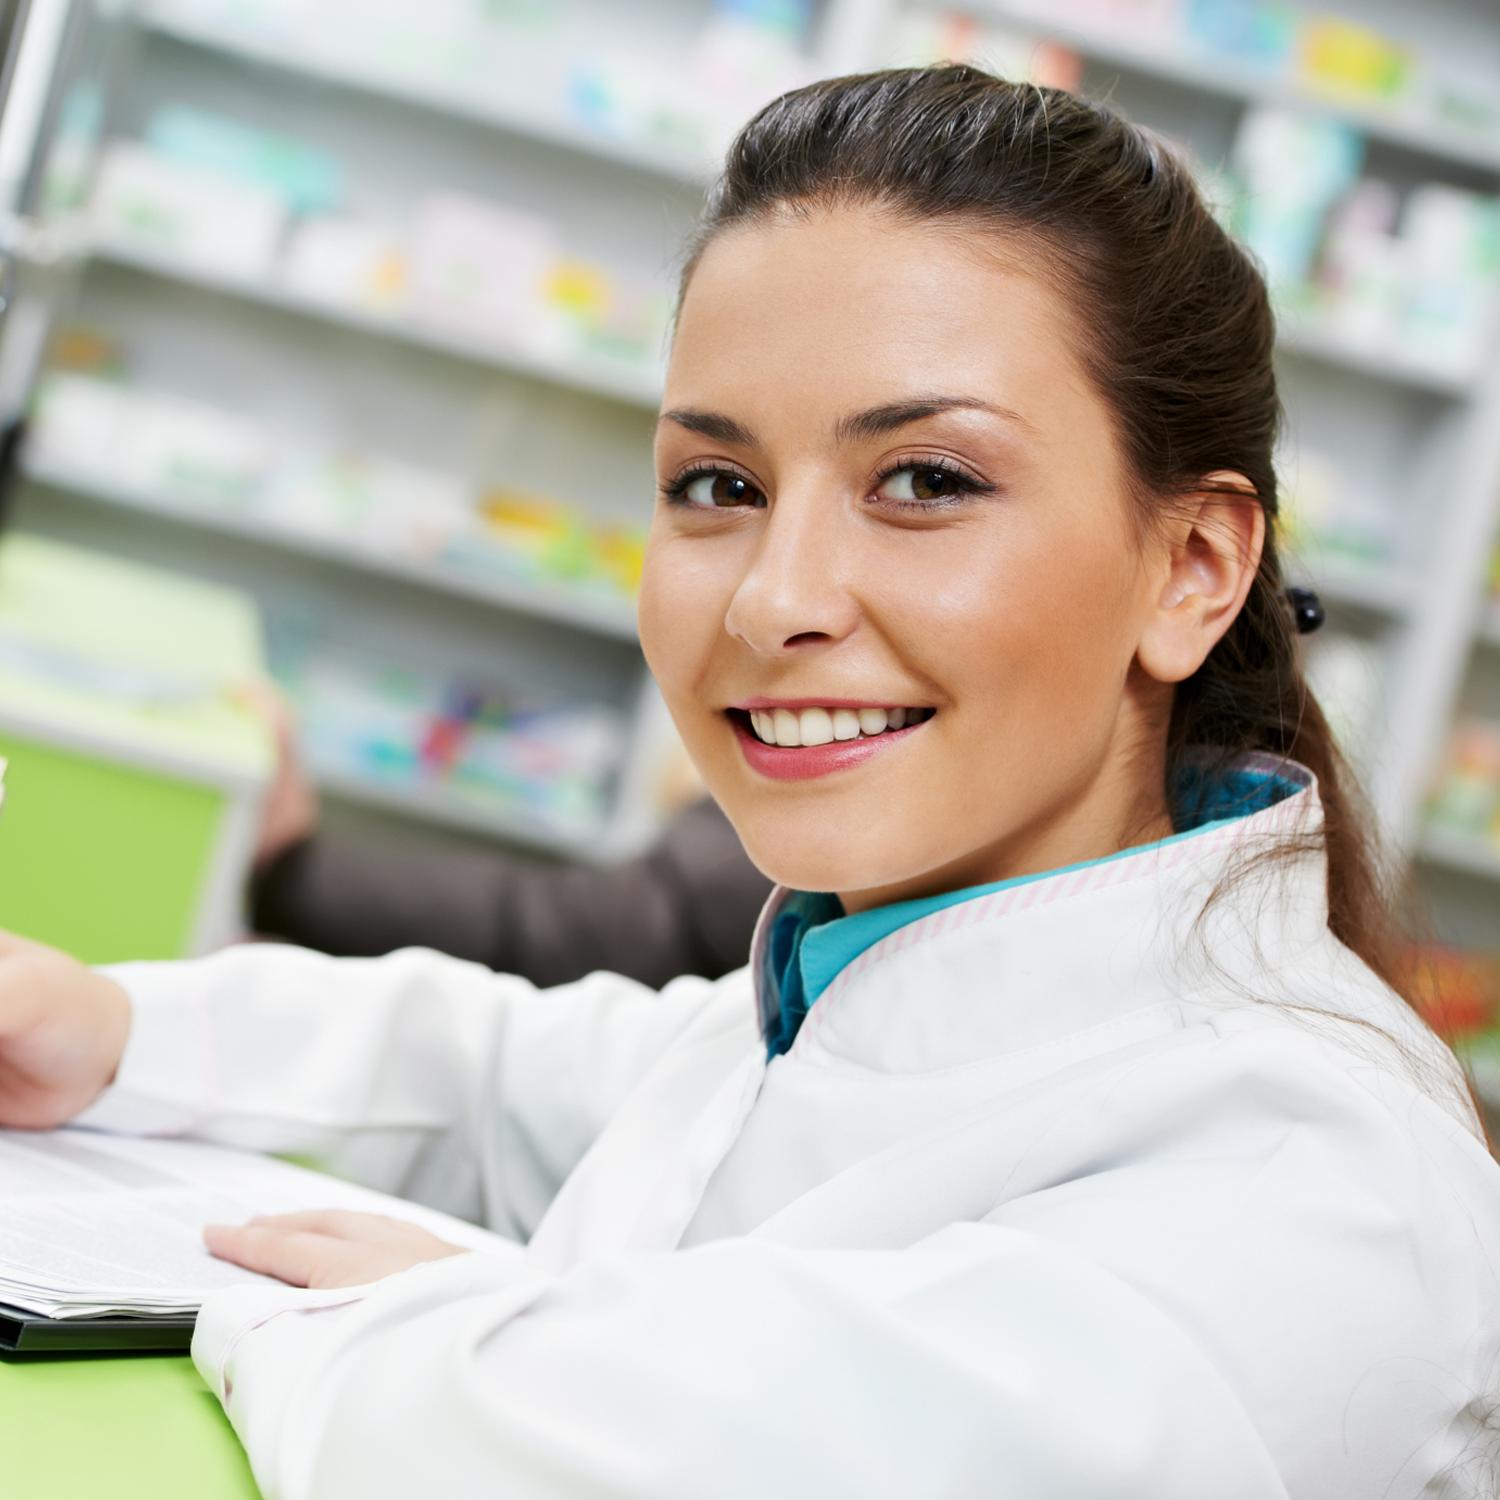 medicines-on-pharmacy-shelves-AYCGDB.jpg